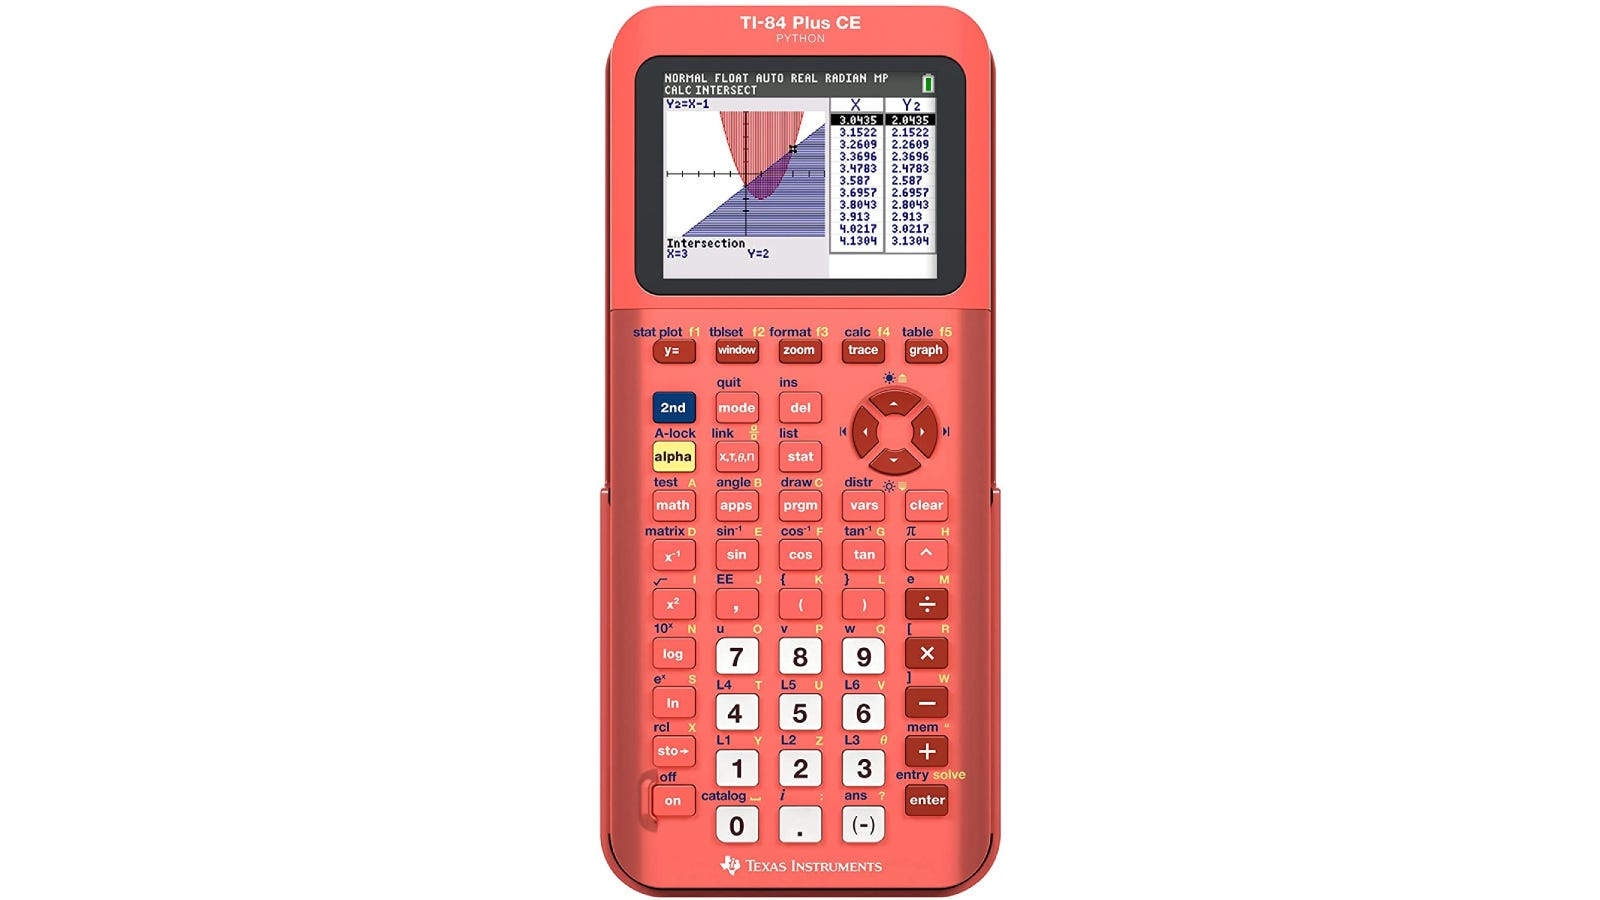 A salmon-colored graphing calculator with a graph and table shown on the screen.